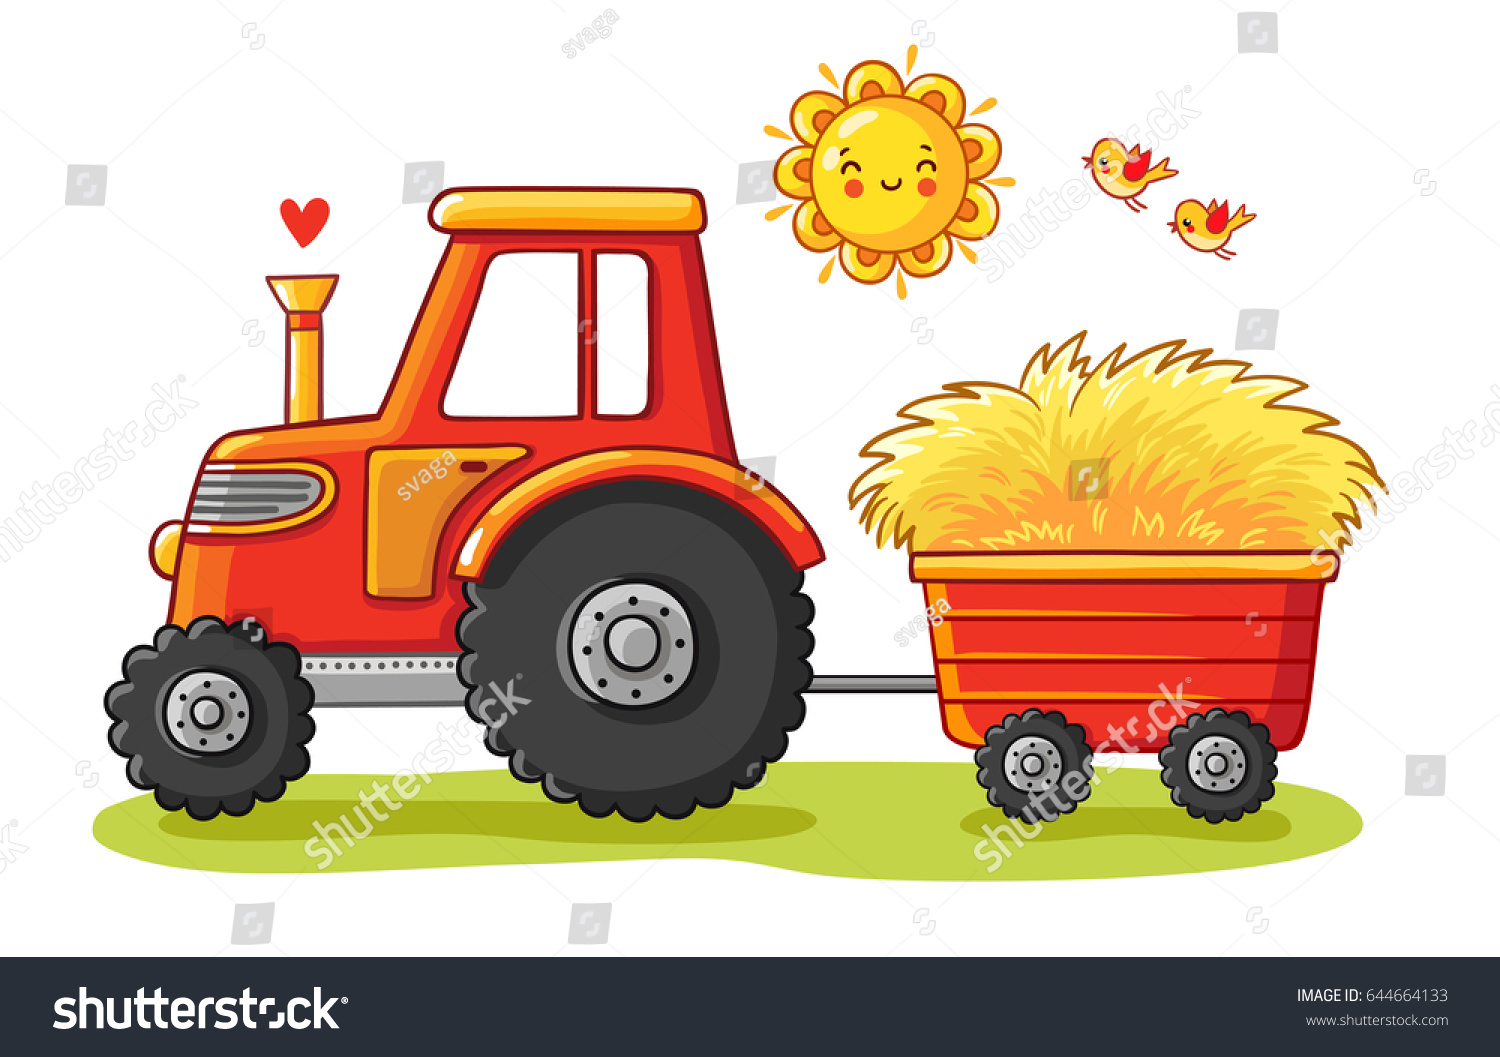 Hay Farmer Tractor Cartoon : Tractor cart agricultural machinery transports hay stock